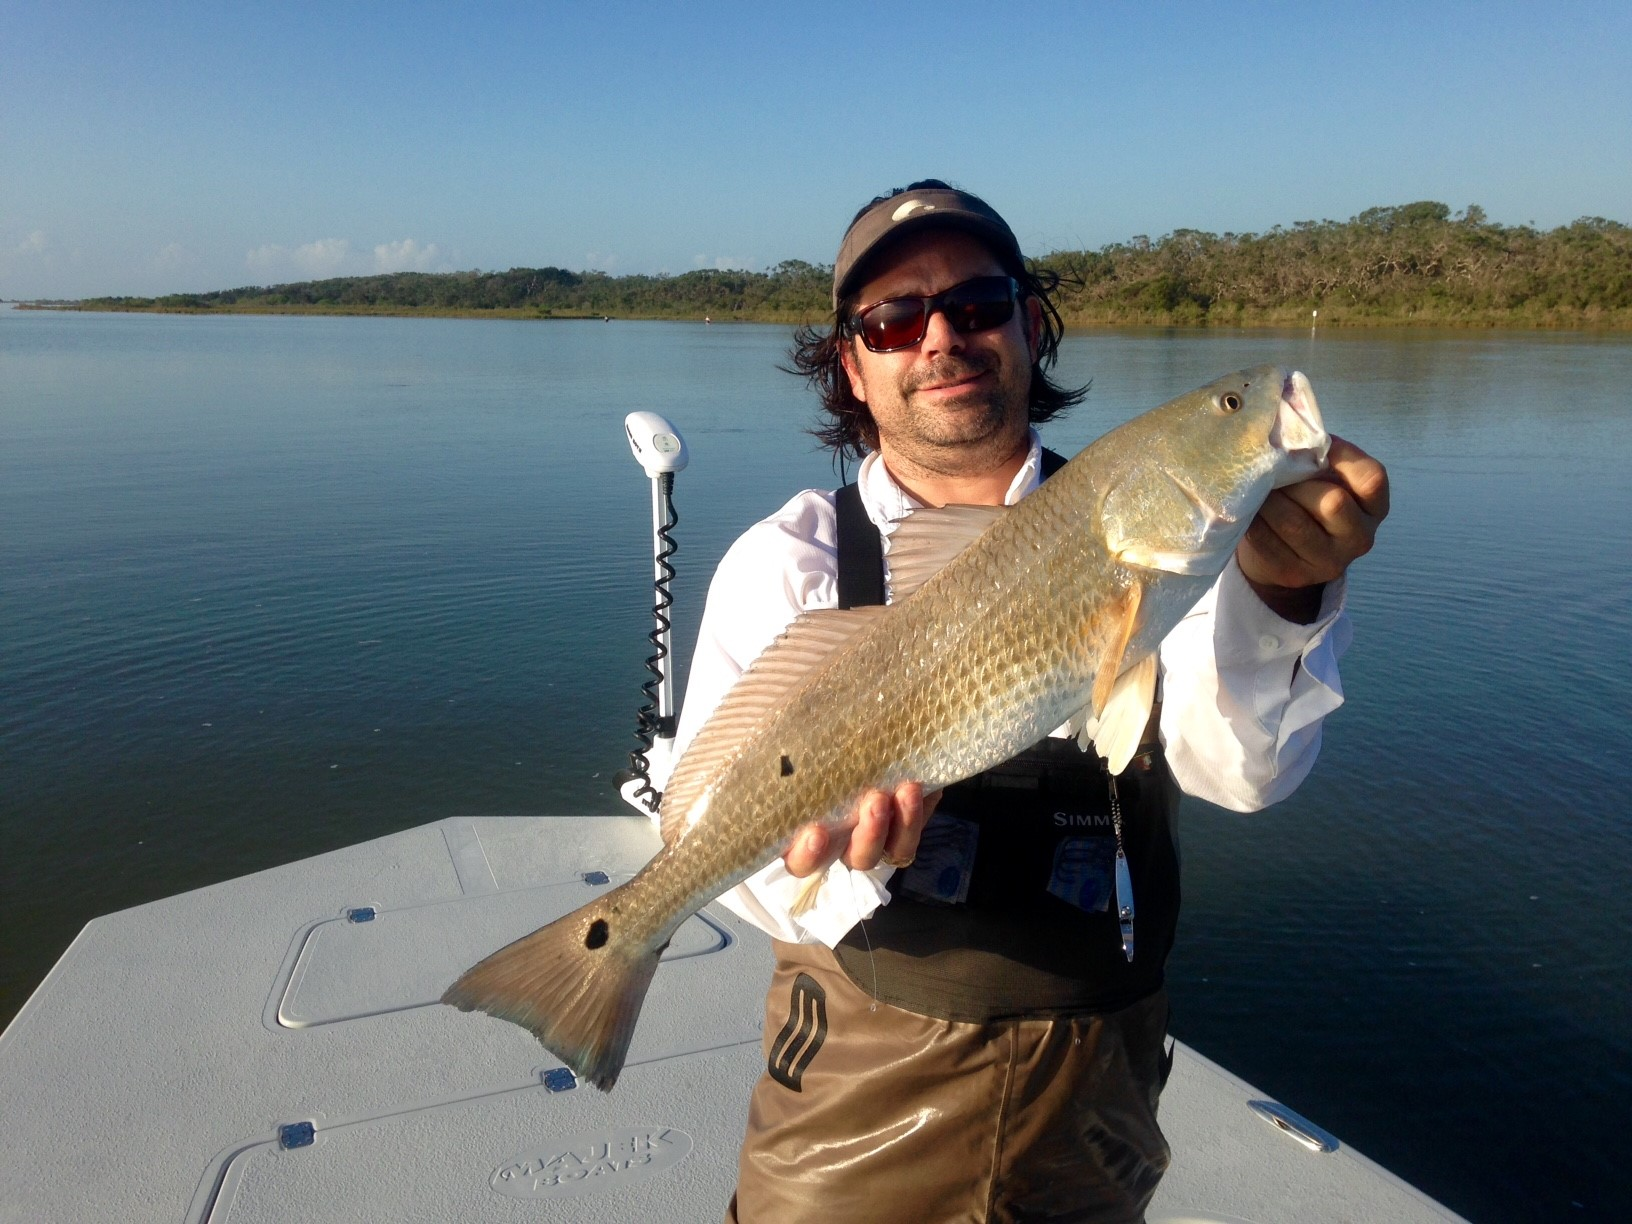 Capt nathan beabout fishing report texas outdoors for Best time to fish tomorrow